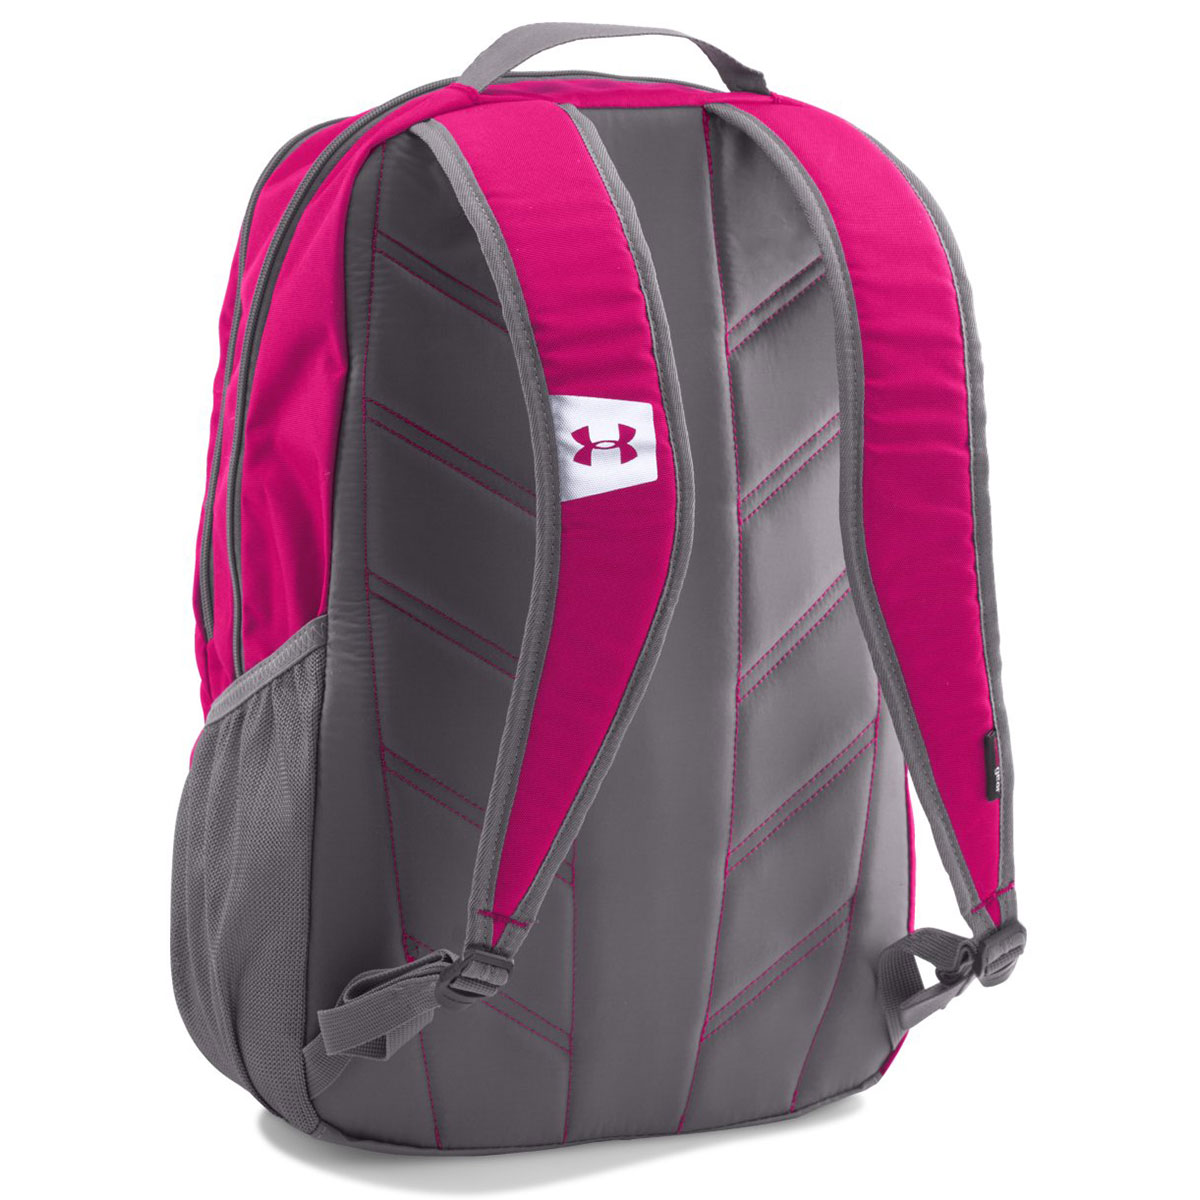 Gym Bag And Backpack: Under Armour UA 2018 Hustle Backpack LDWR Rucksack School